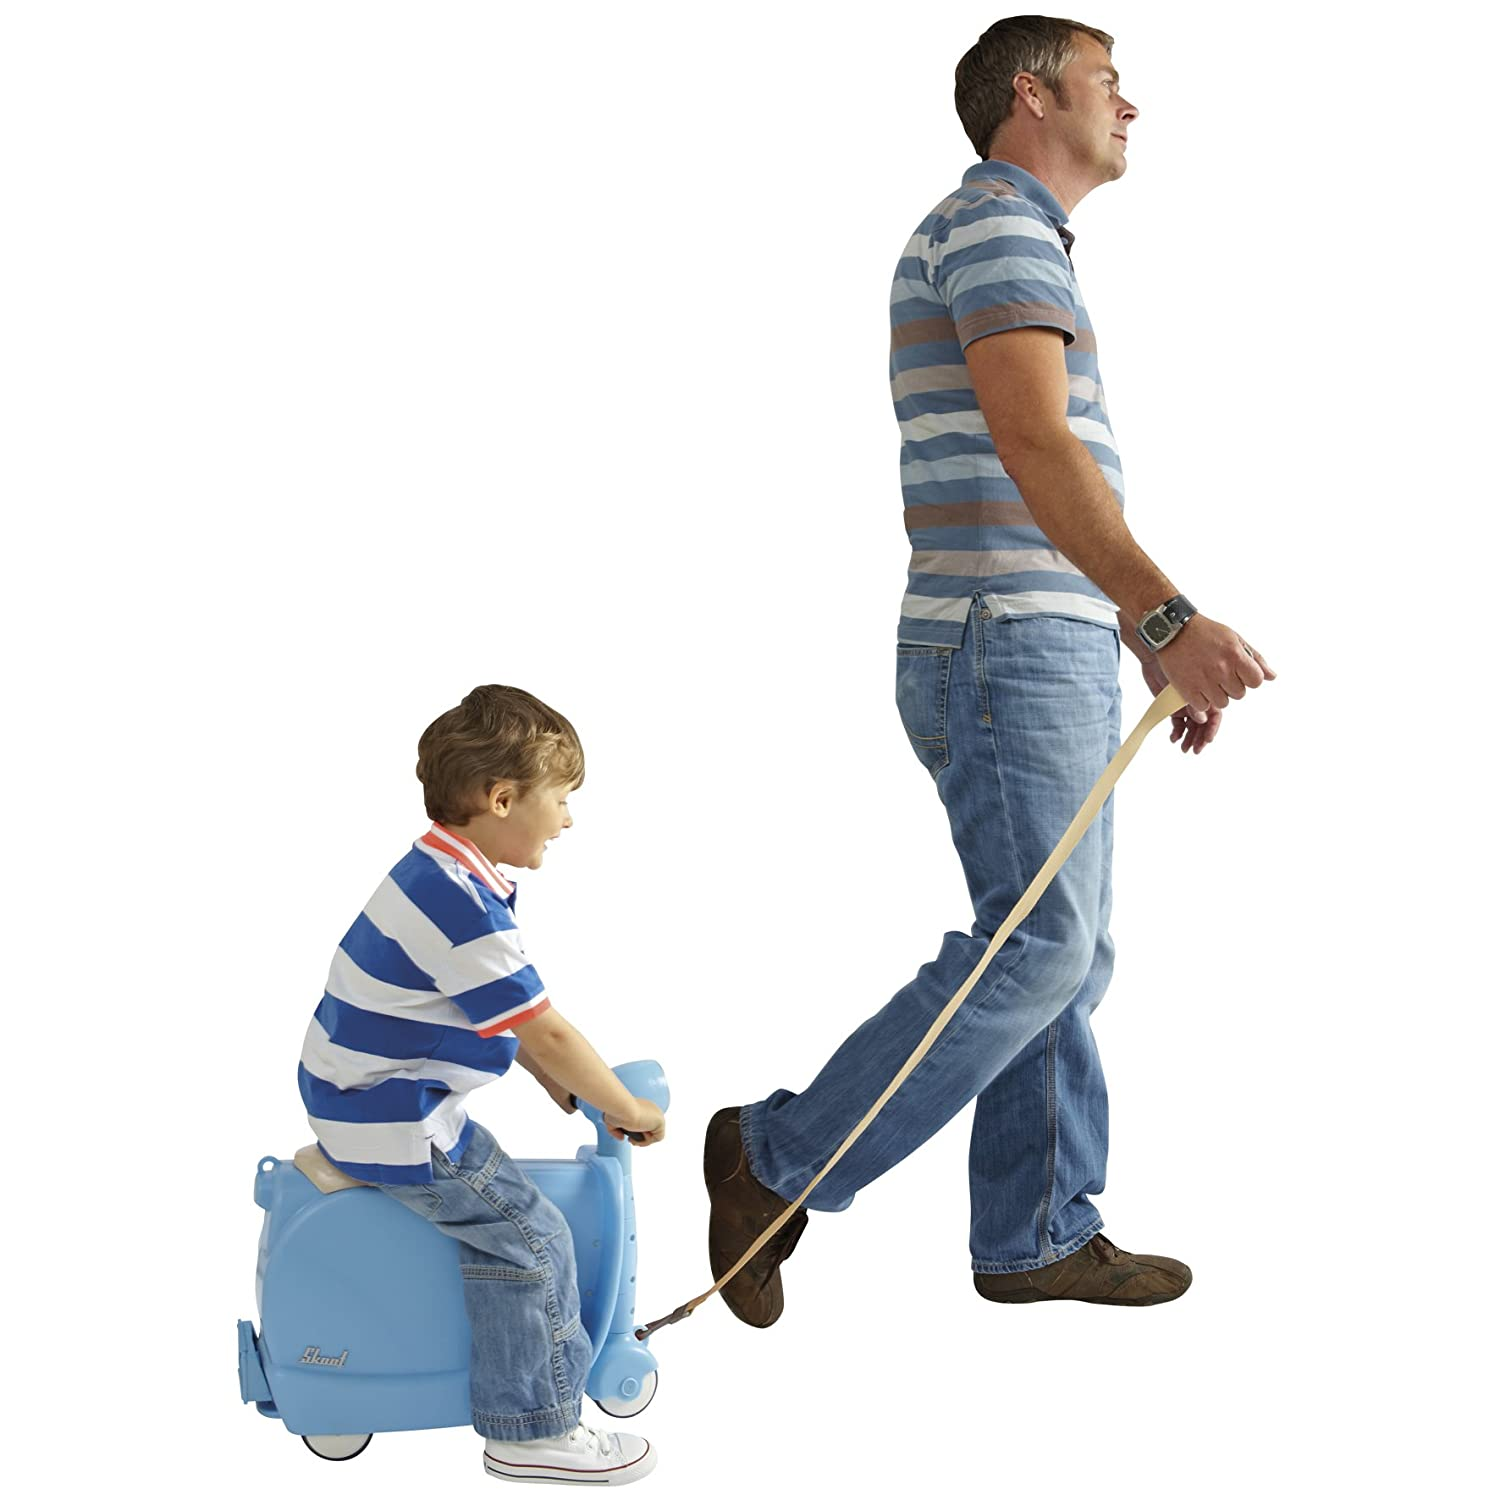 Amazon.com: Blue Skoot Ride One Suitcase: Toys & Games